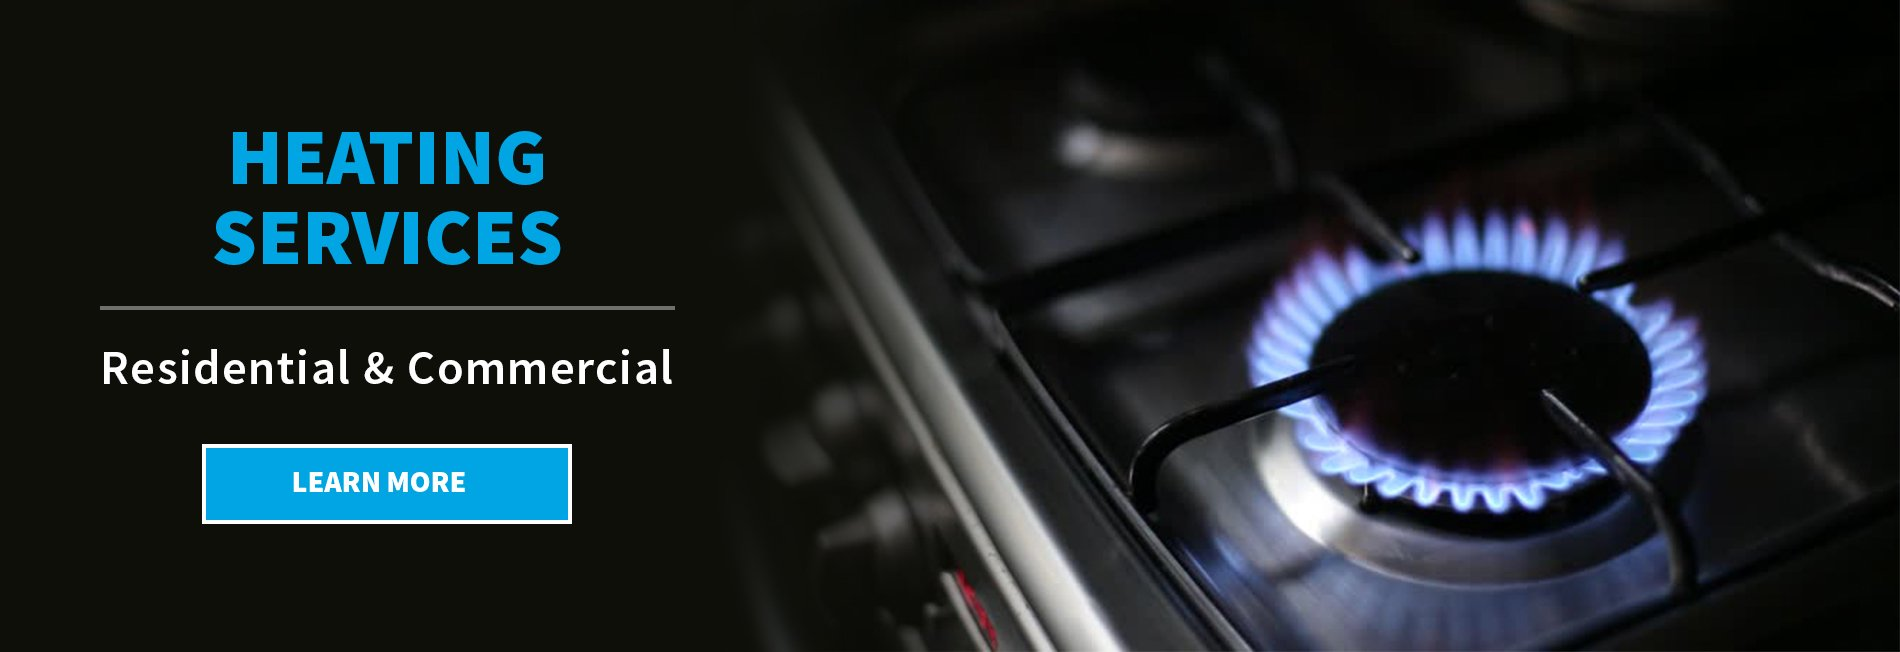 Aquality Residential and Commercial Heating Services